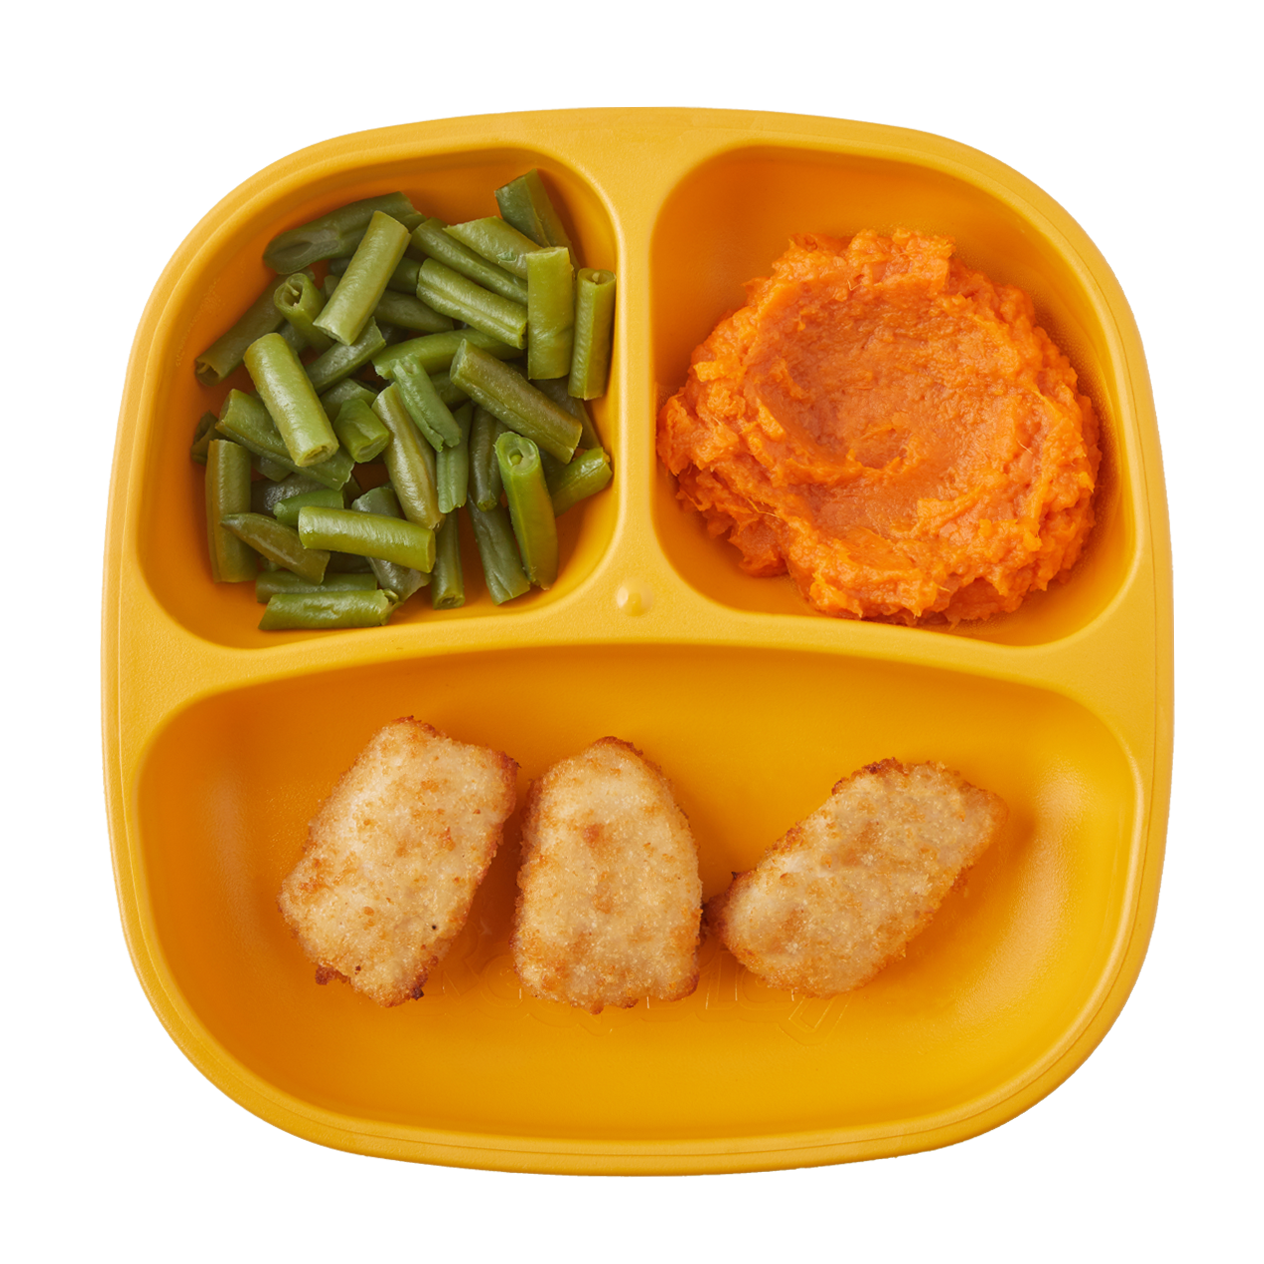 Chicken Bites with Mashed Sweet Potatoes & Green Beans